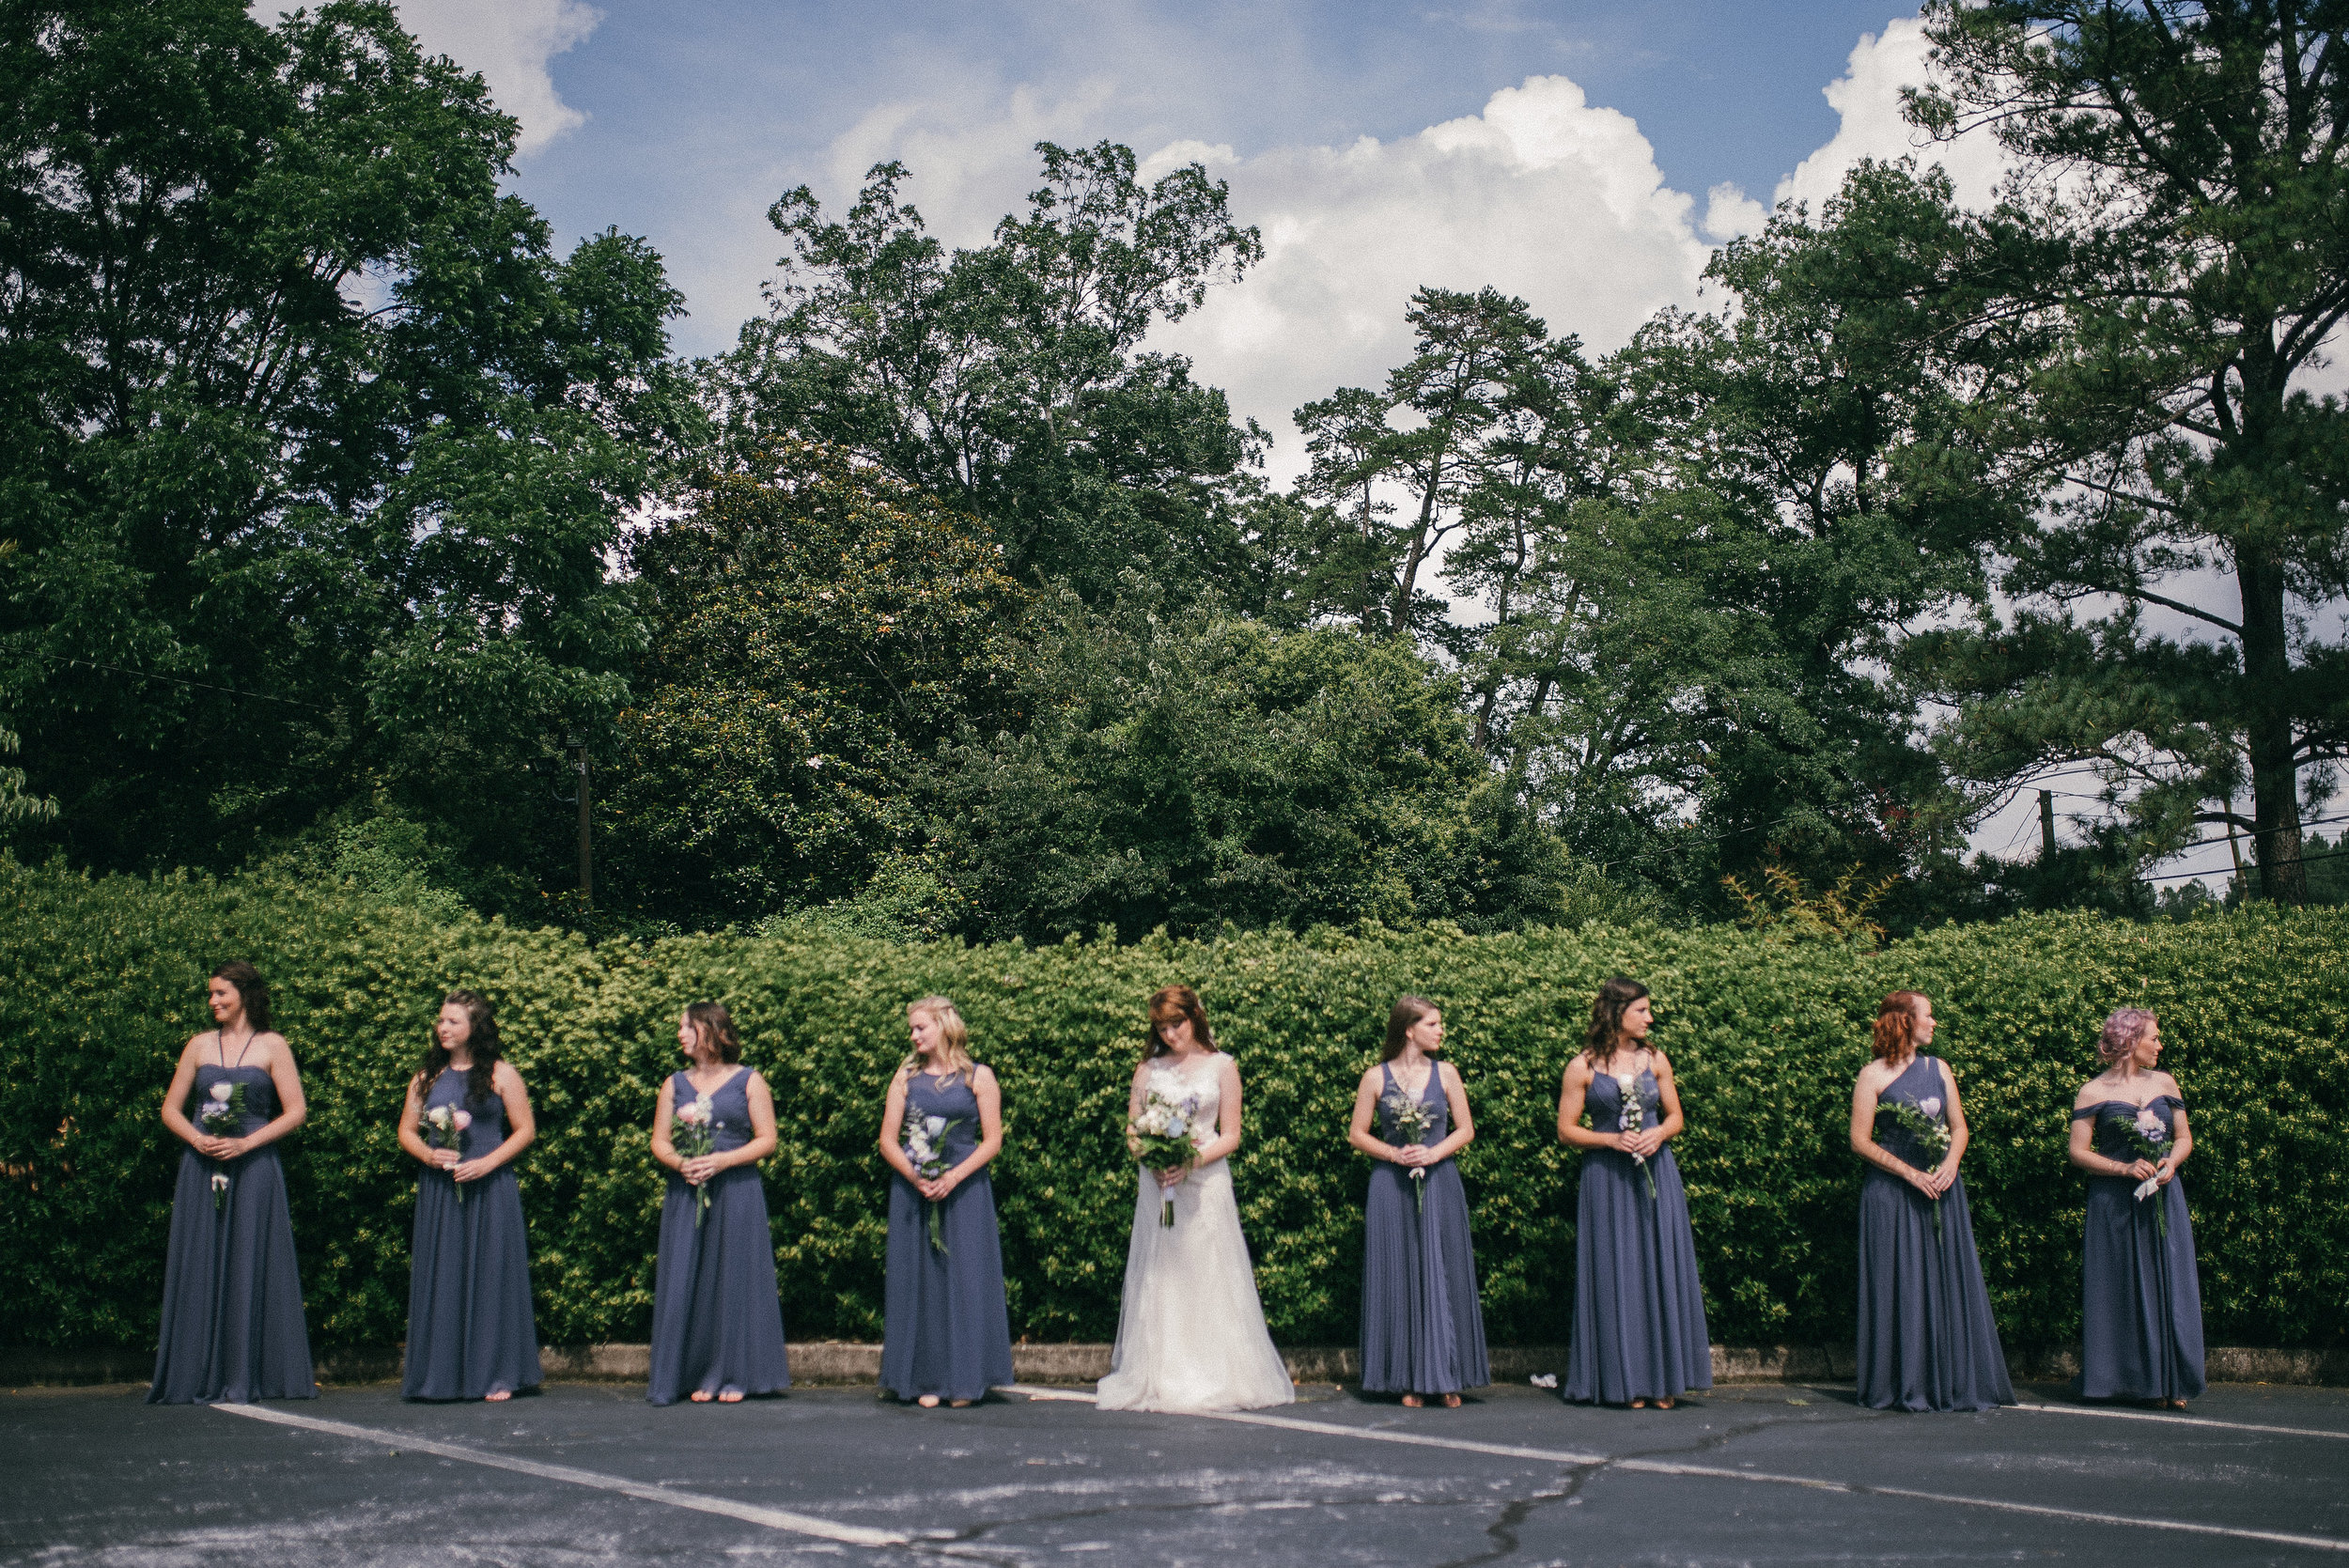 Atlanta Wedding Photographer - North Carolina Wedding Photographer - South Carolina Wedding Photographer